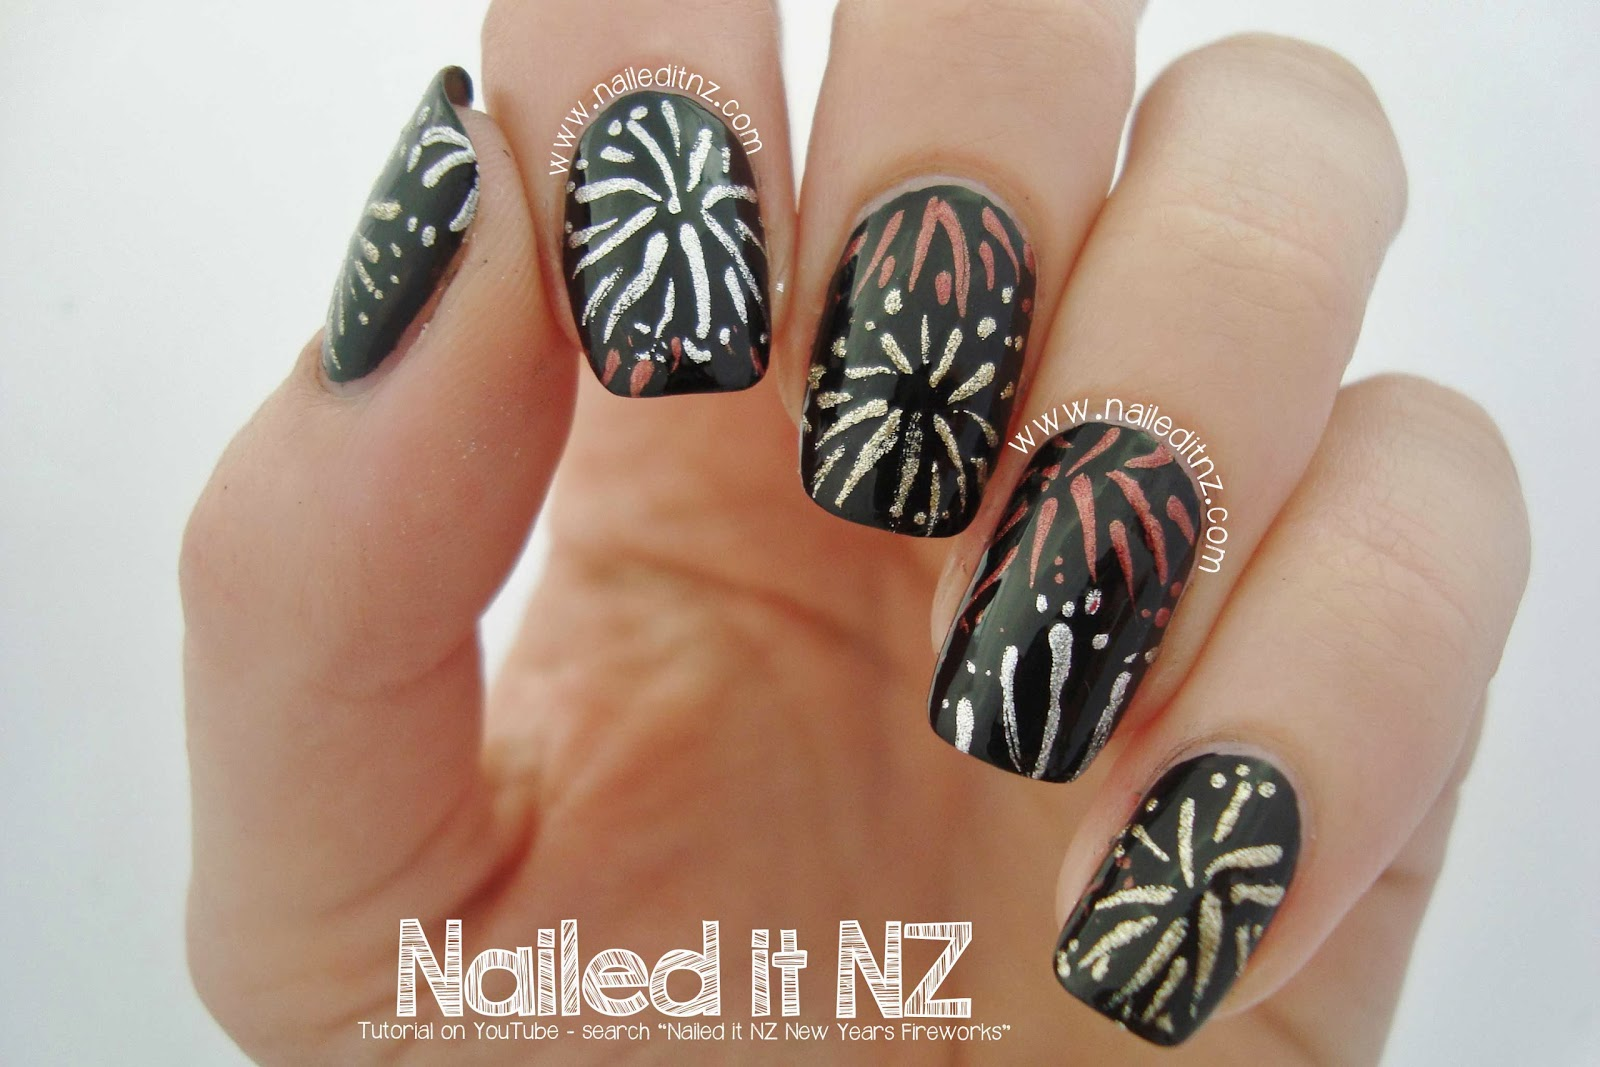 New yearsfireworks nail art tutorial 12 days of christmas nail new yearsfireworks nail art tutorial 12 days of christmas nail art challenge prinsesfo Images